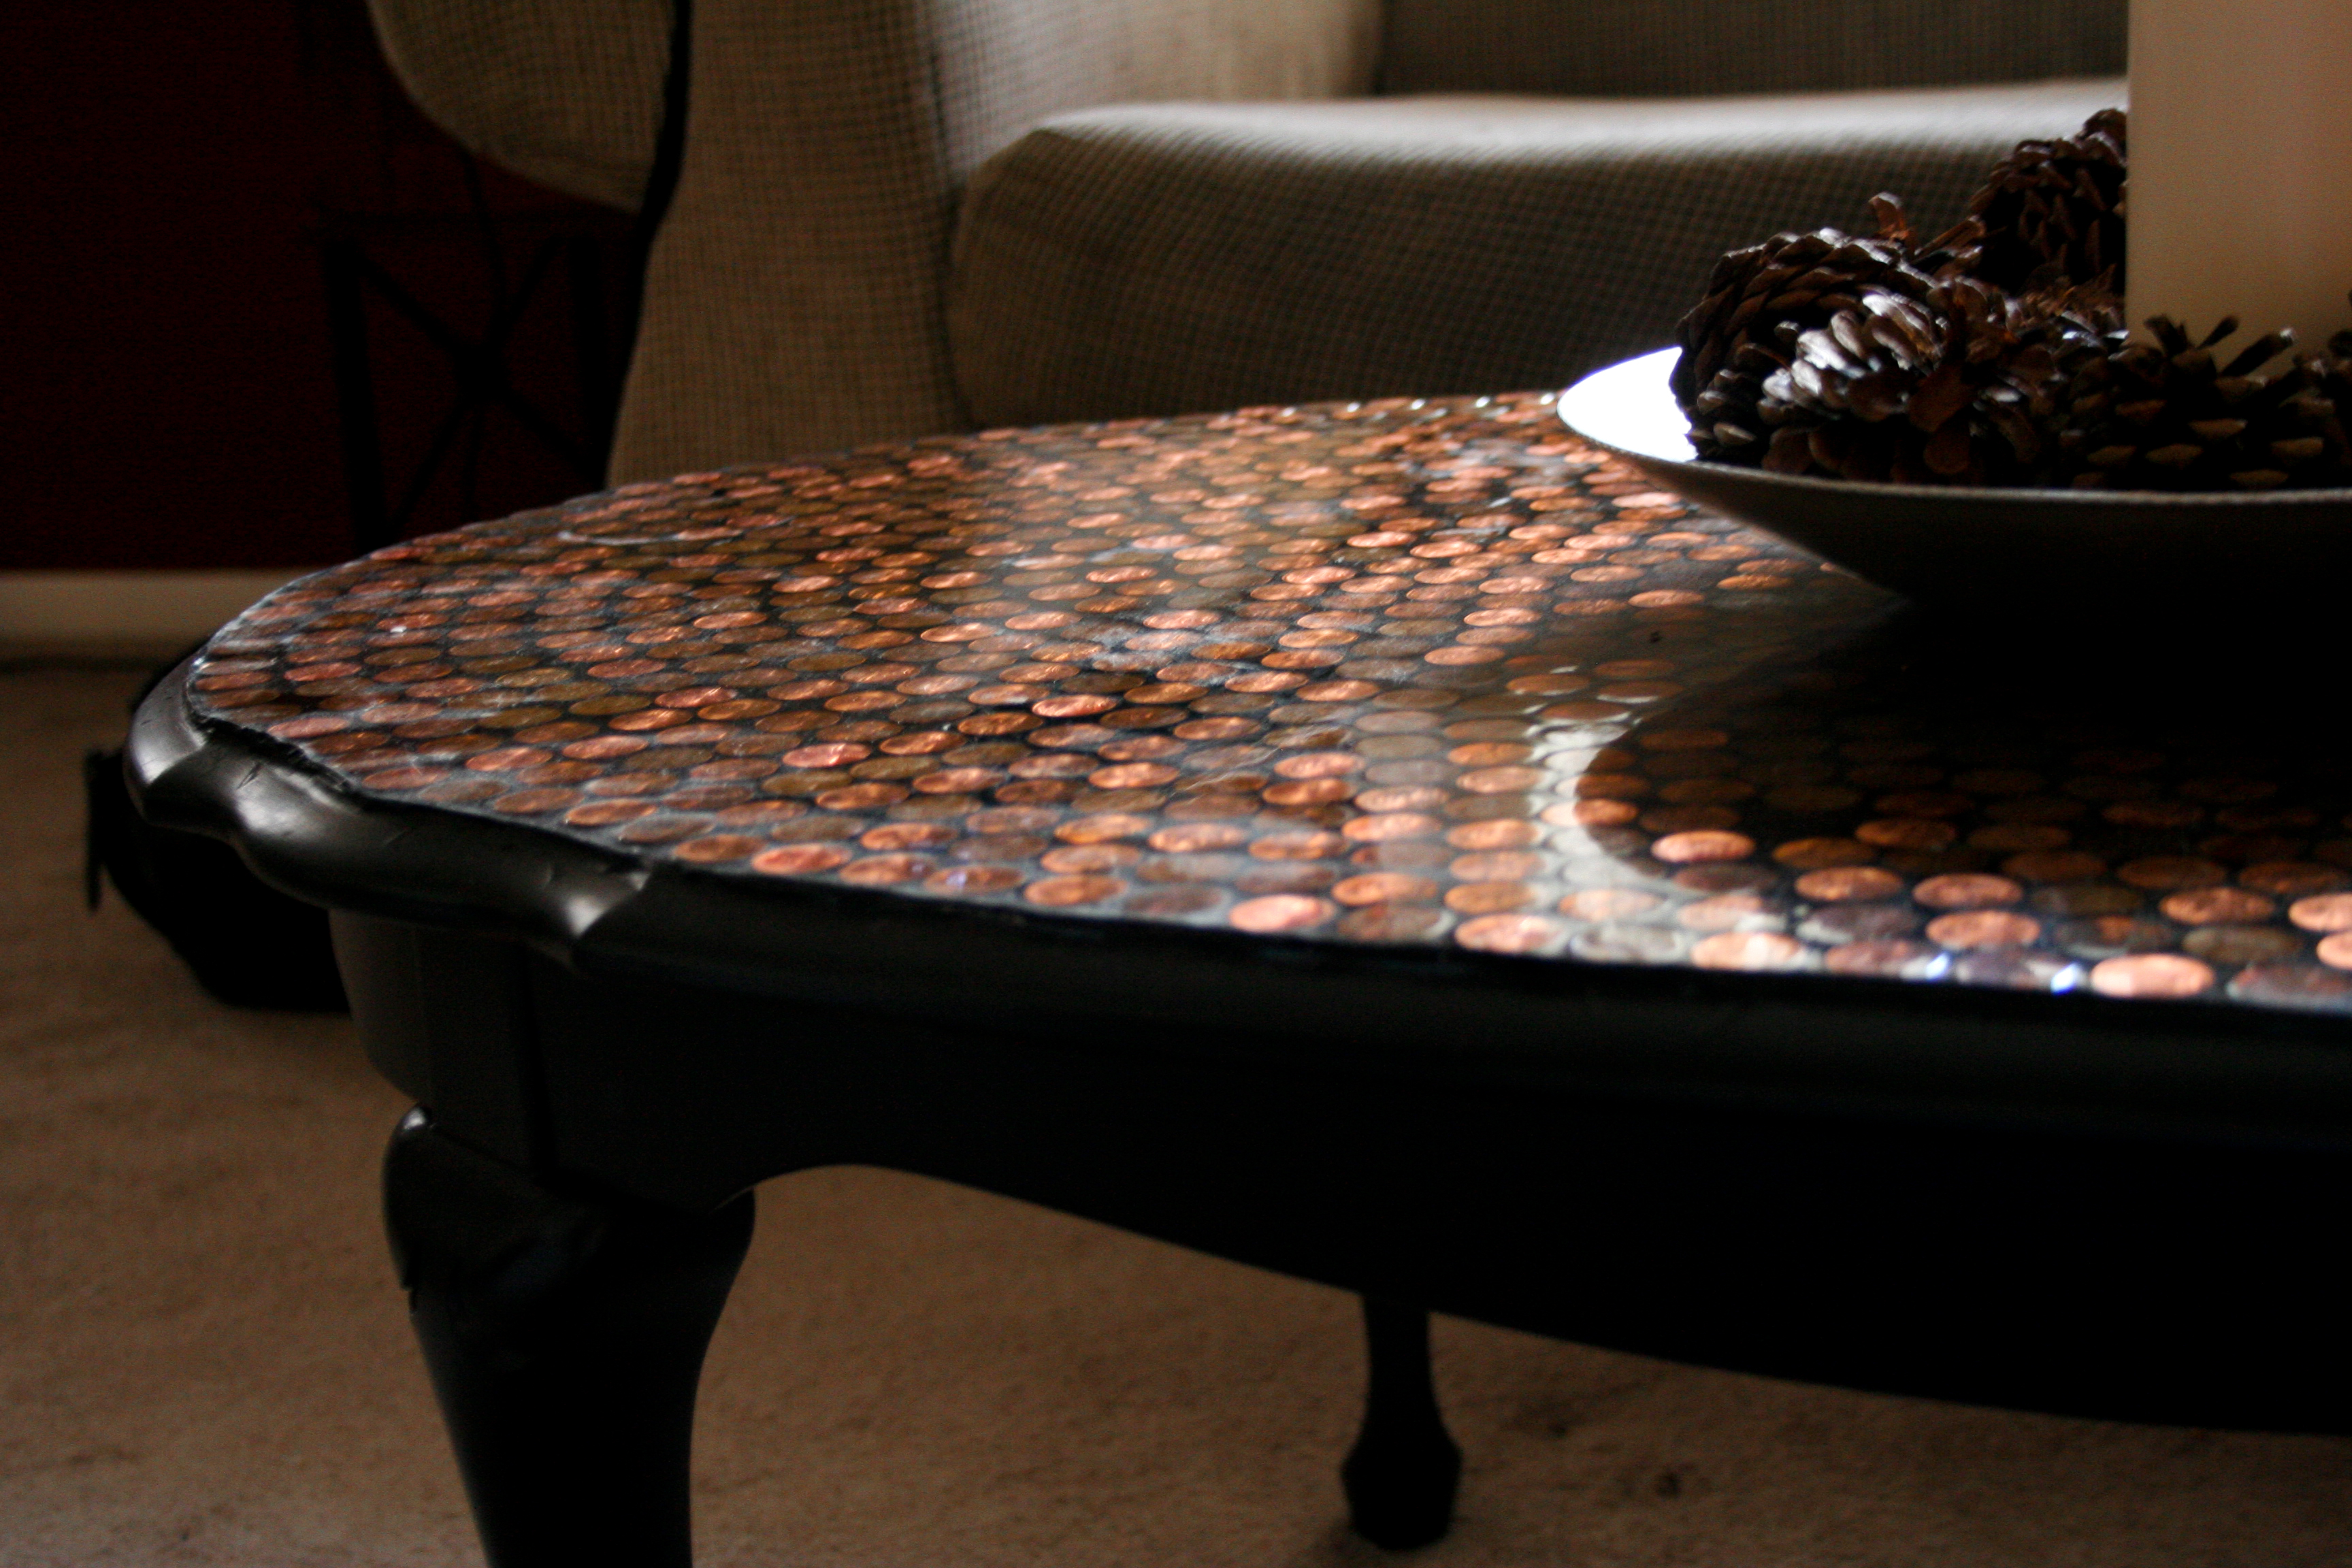 DIY Penny Tiled Table